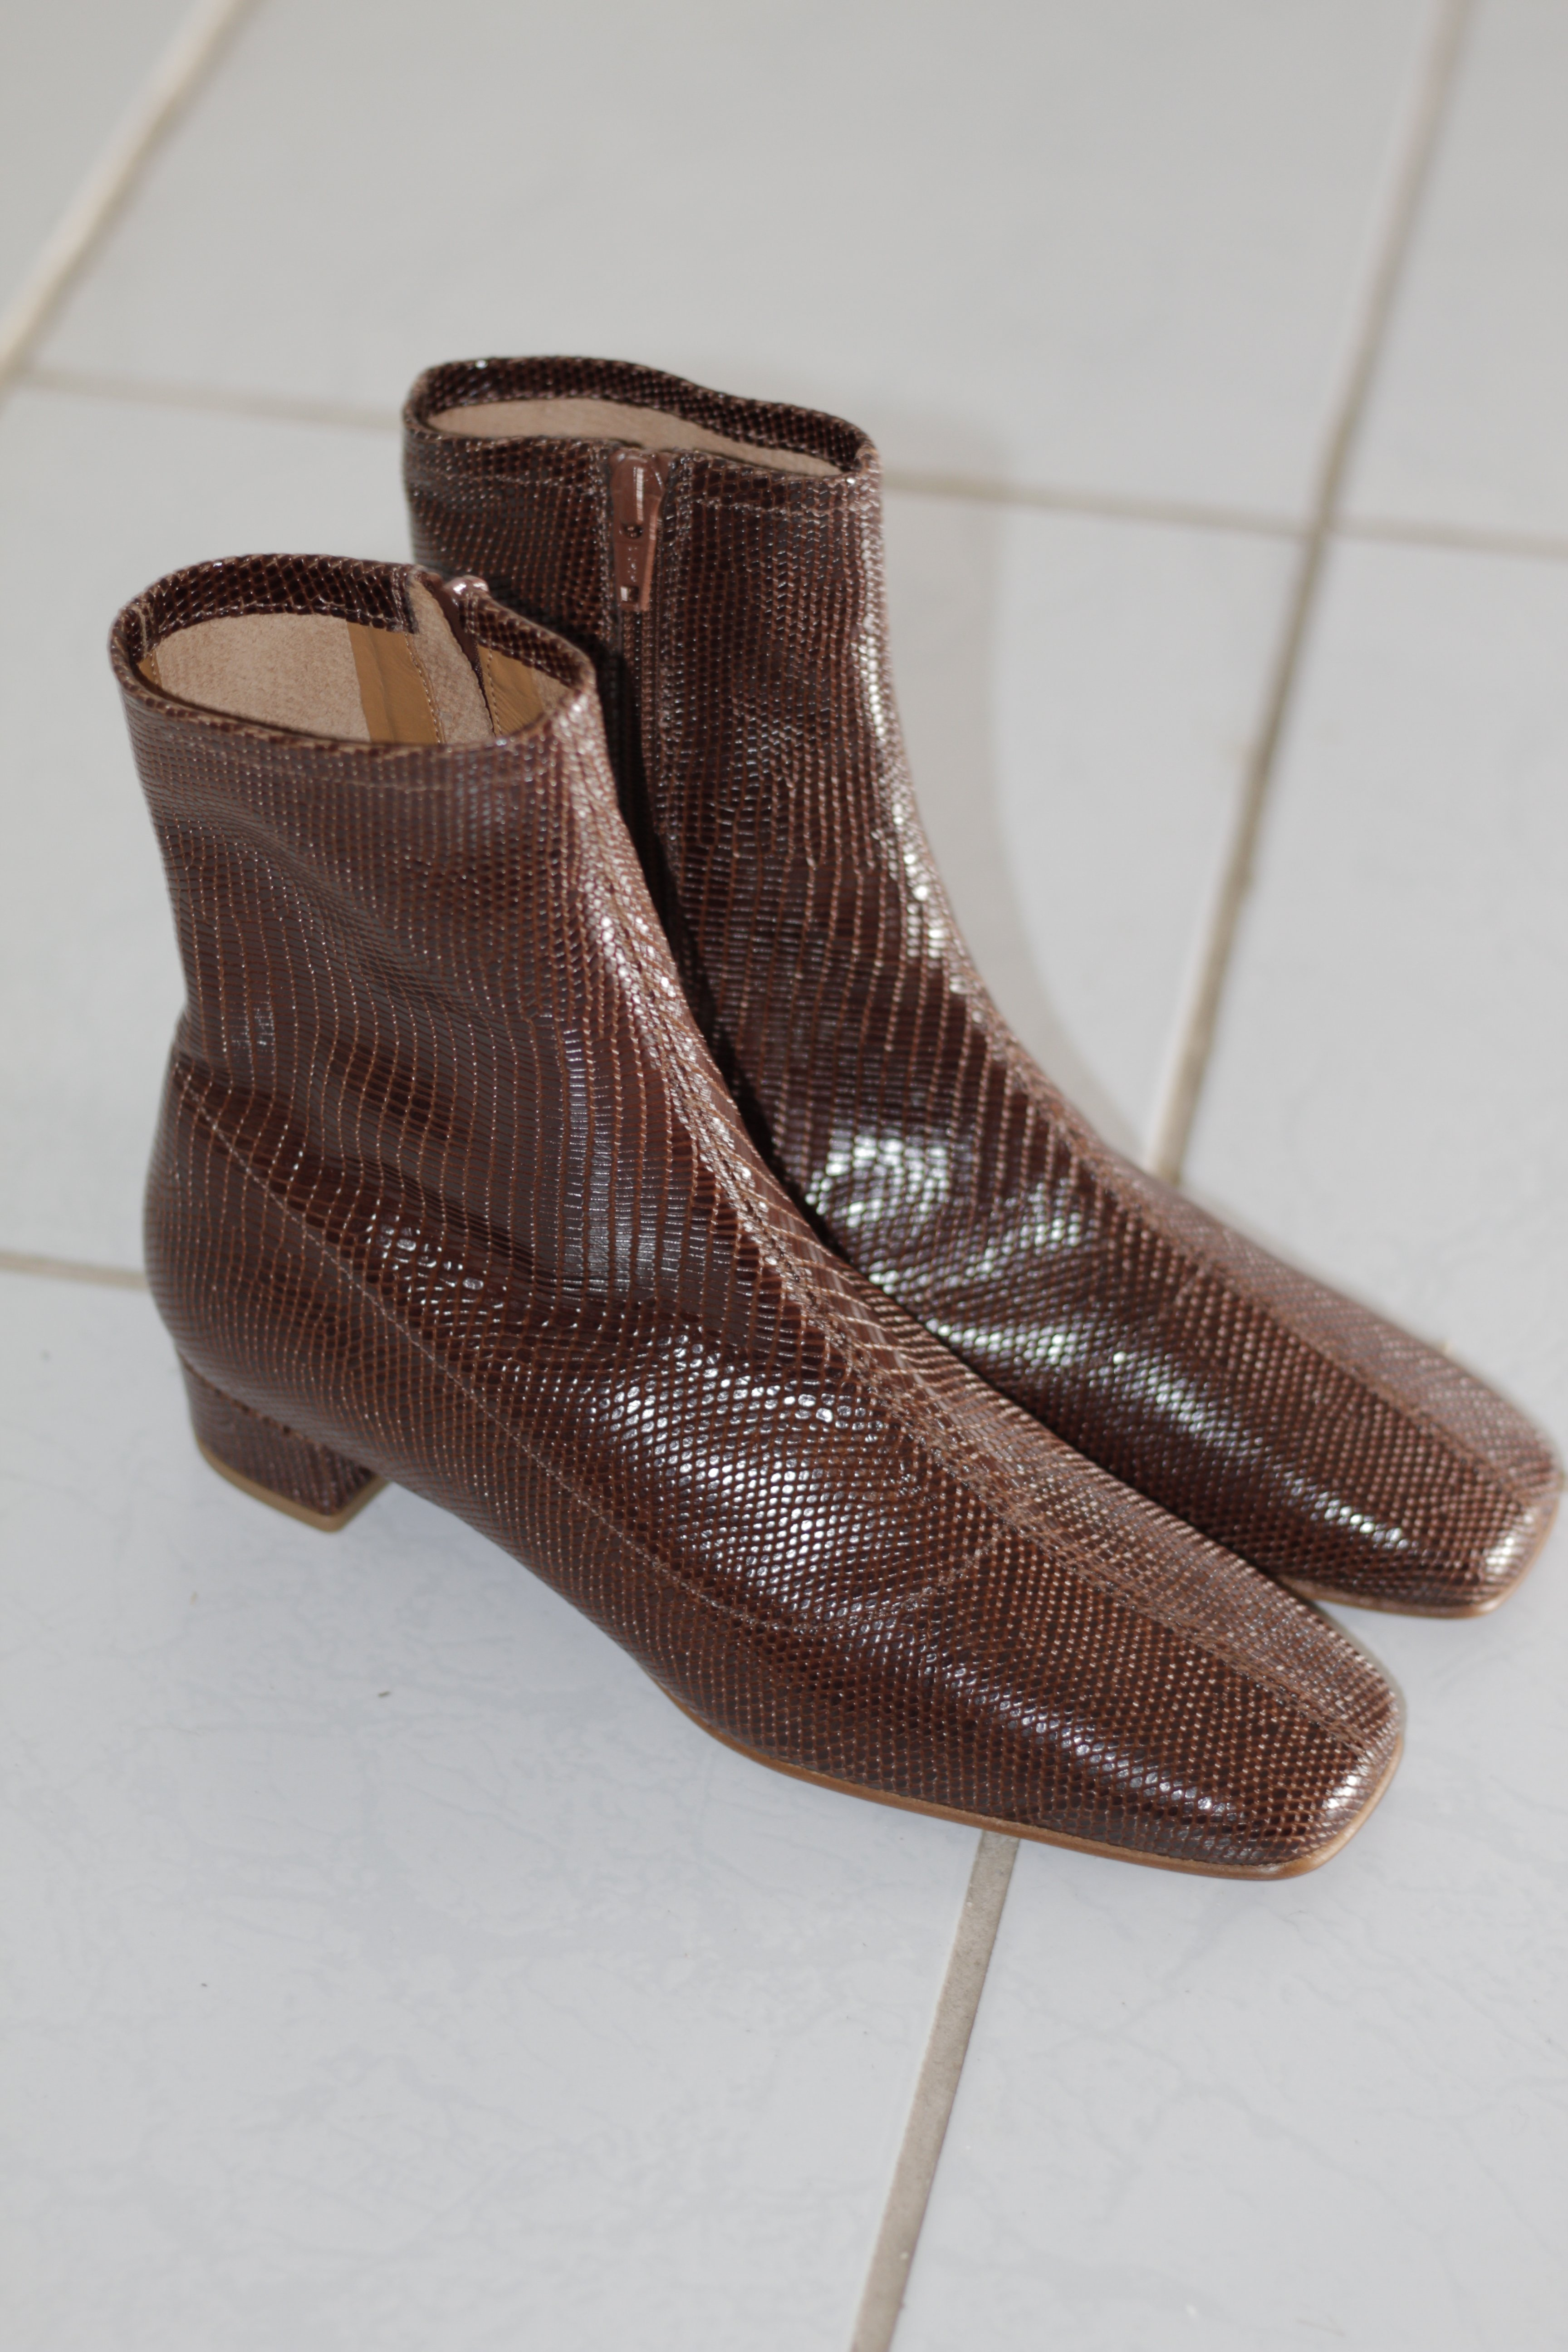 7403146db21 BY FAR Este Lizard Embossed Leather Boots - Brown